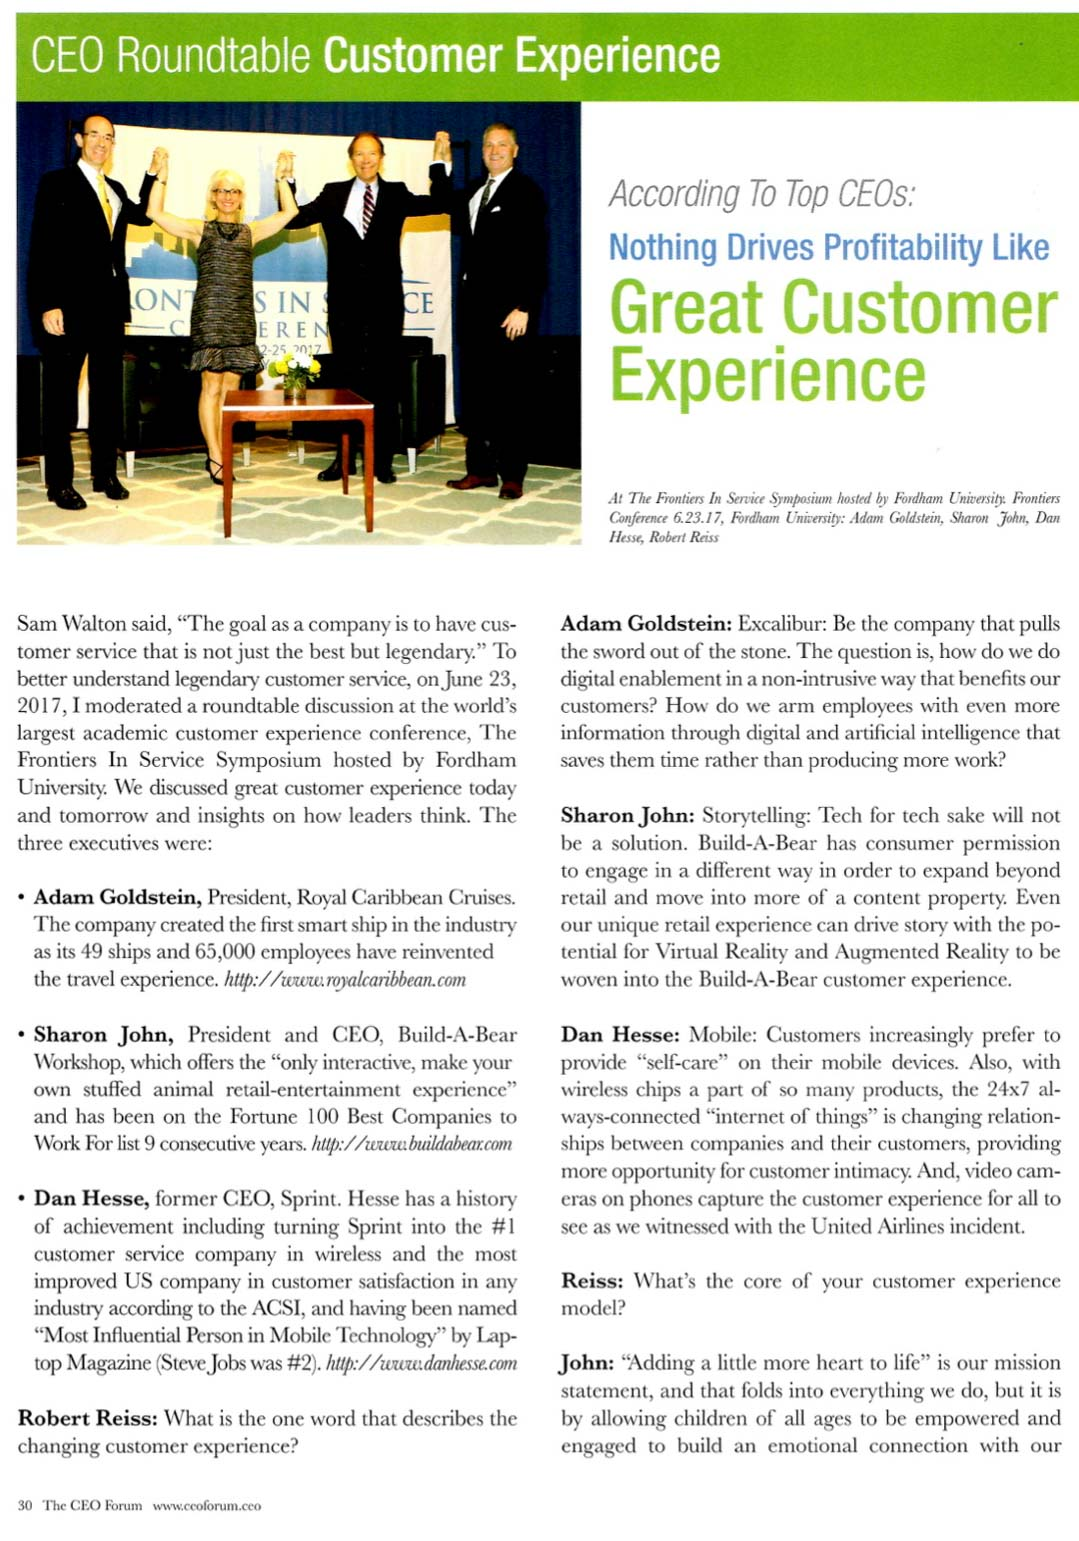 CEOs: Nothing Drives Profitability like Great Customer Experience